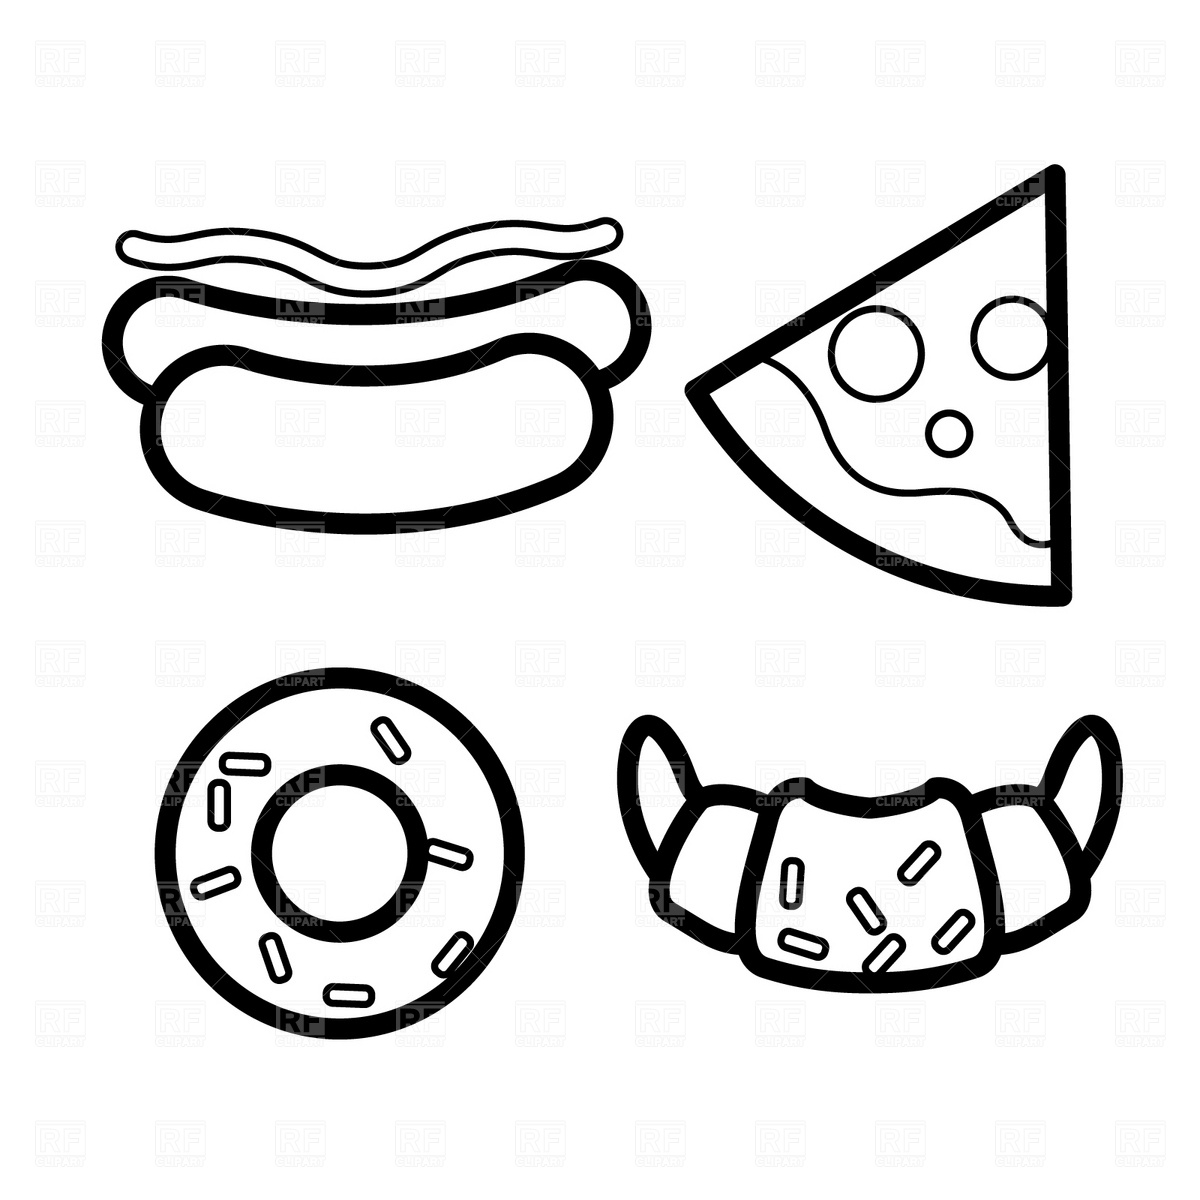 donut coloring page - big donut clipart black and white